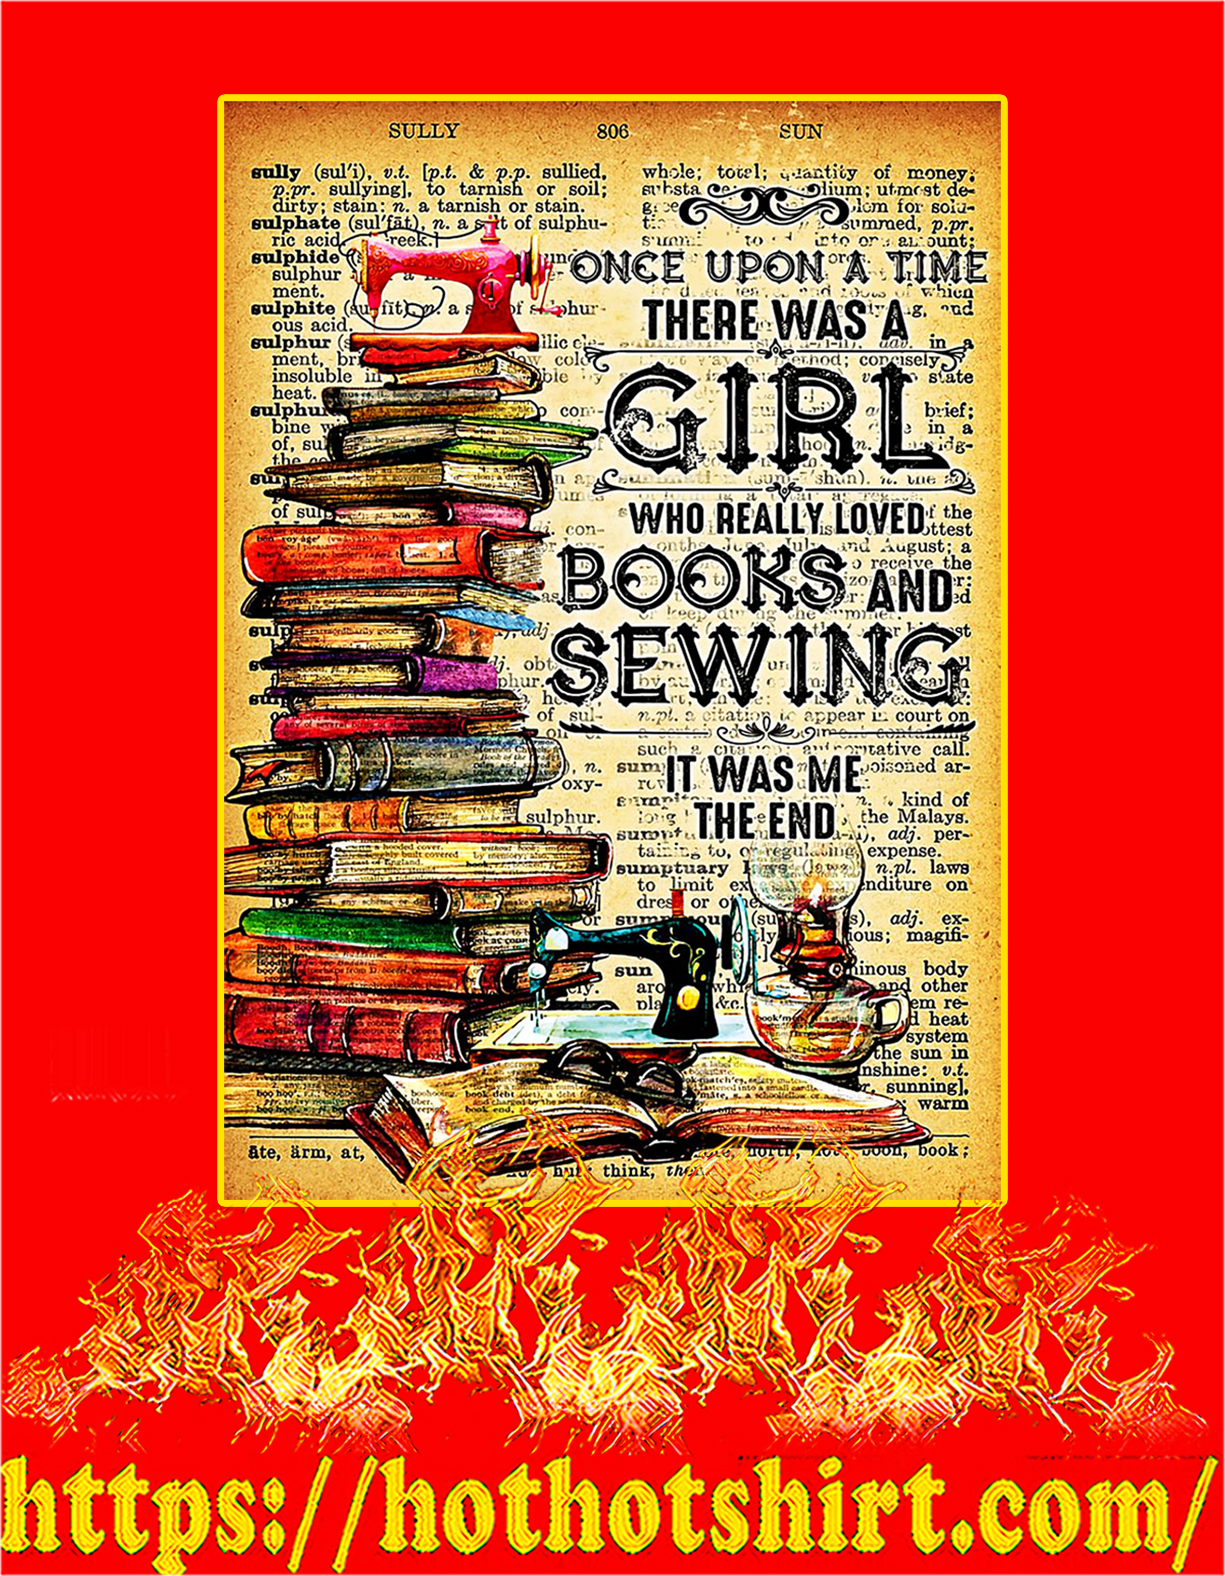 There was a Girl who really loved books and sewing poster - A4